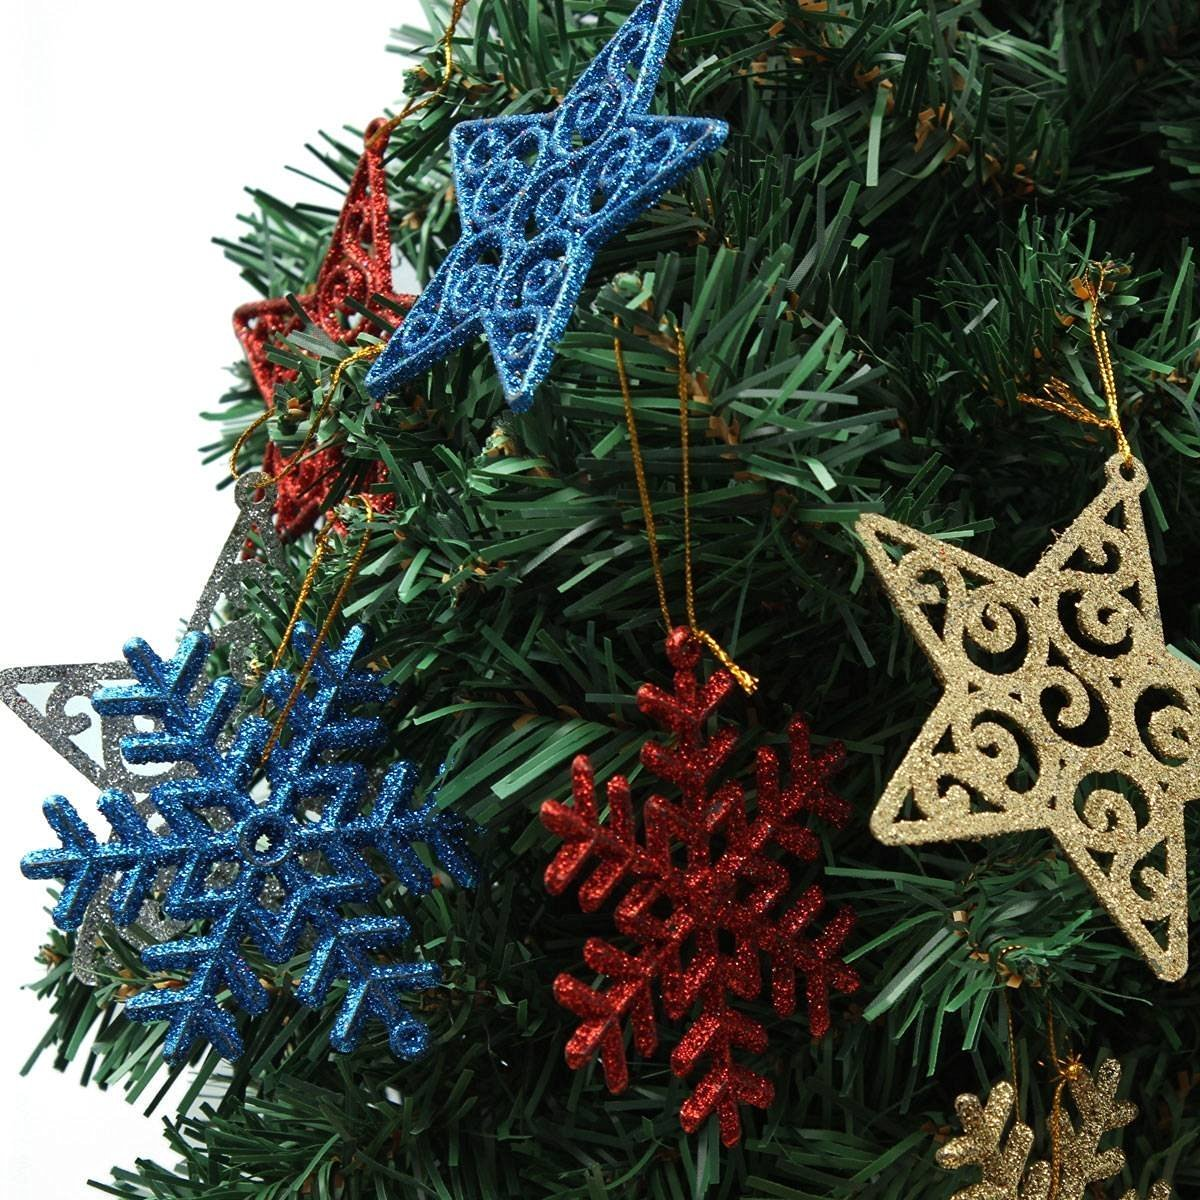 Saver 6pcs Xmas Christmas Tree Deocration Star Snowflake Christmas Hanging Decoration